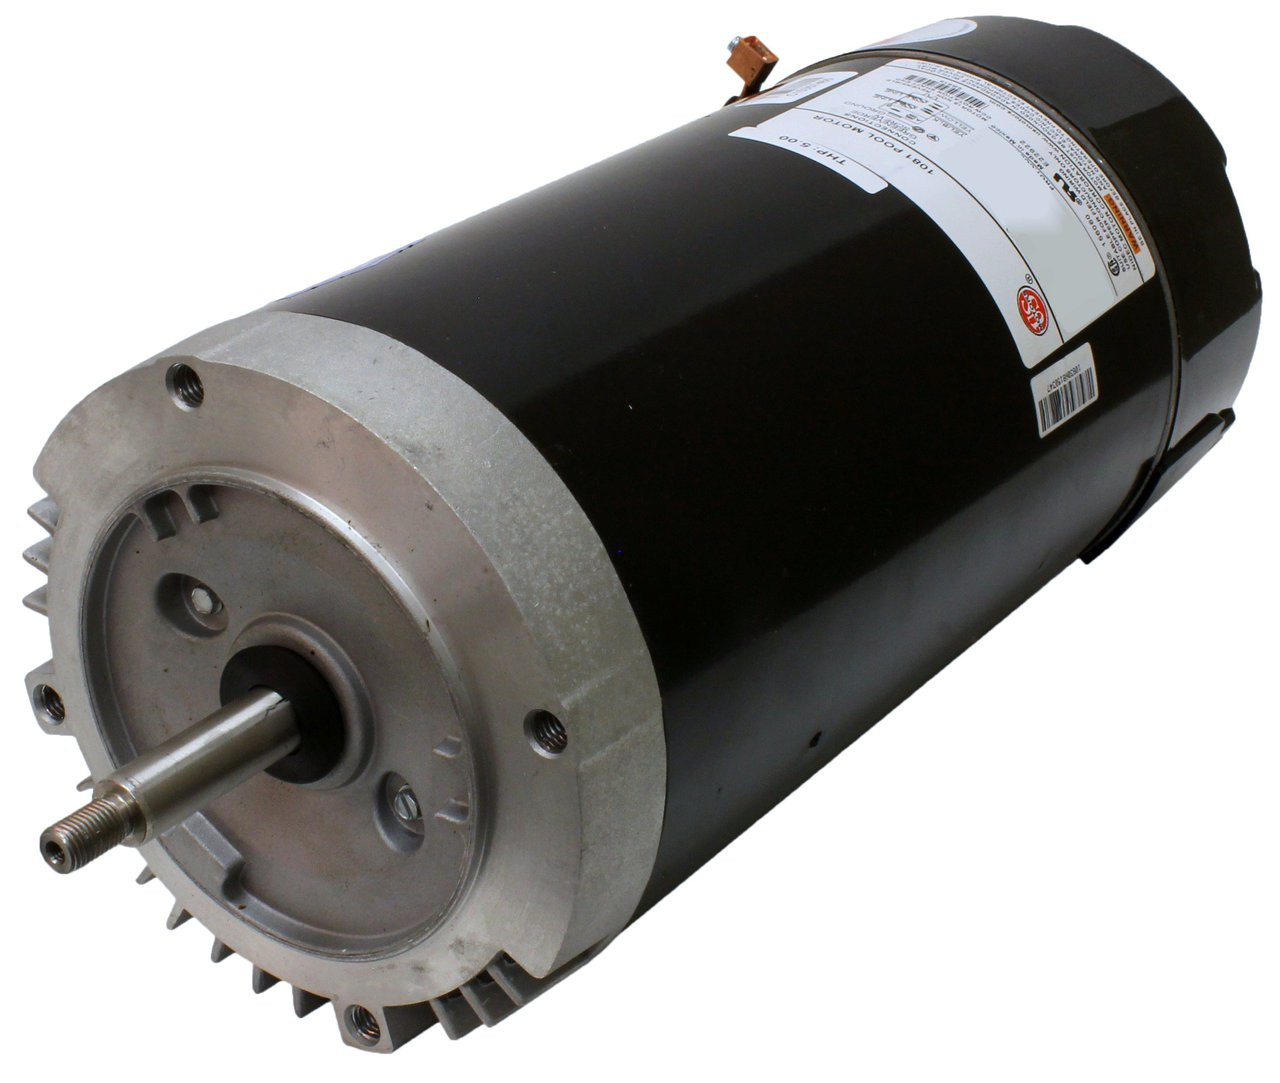 medium resolution of 1 hp 3450 rpm 56j frame 115 230v switchless swimming pool pump motor us electric